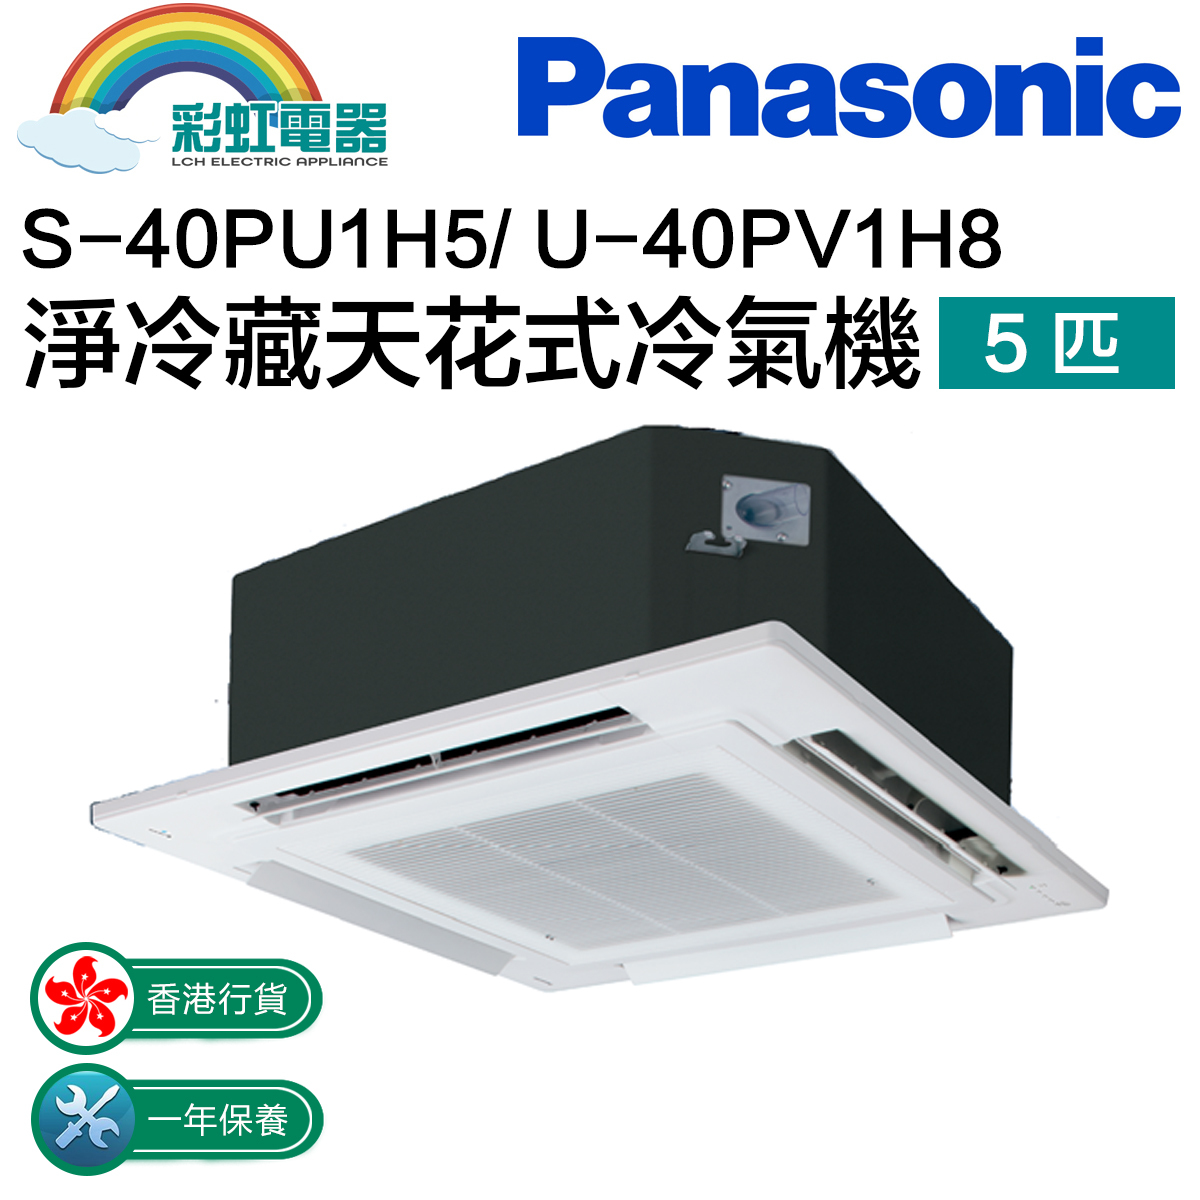 S-40PU1H5/ U-40PV1H8 Net refrigerating day fancy air conditioner 5 pieces